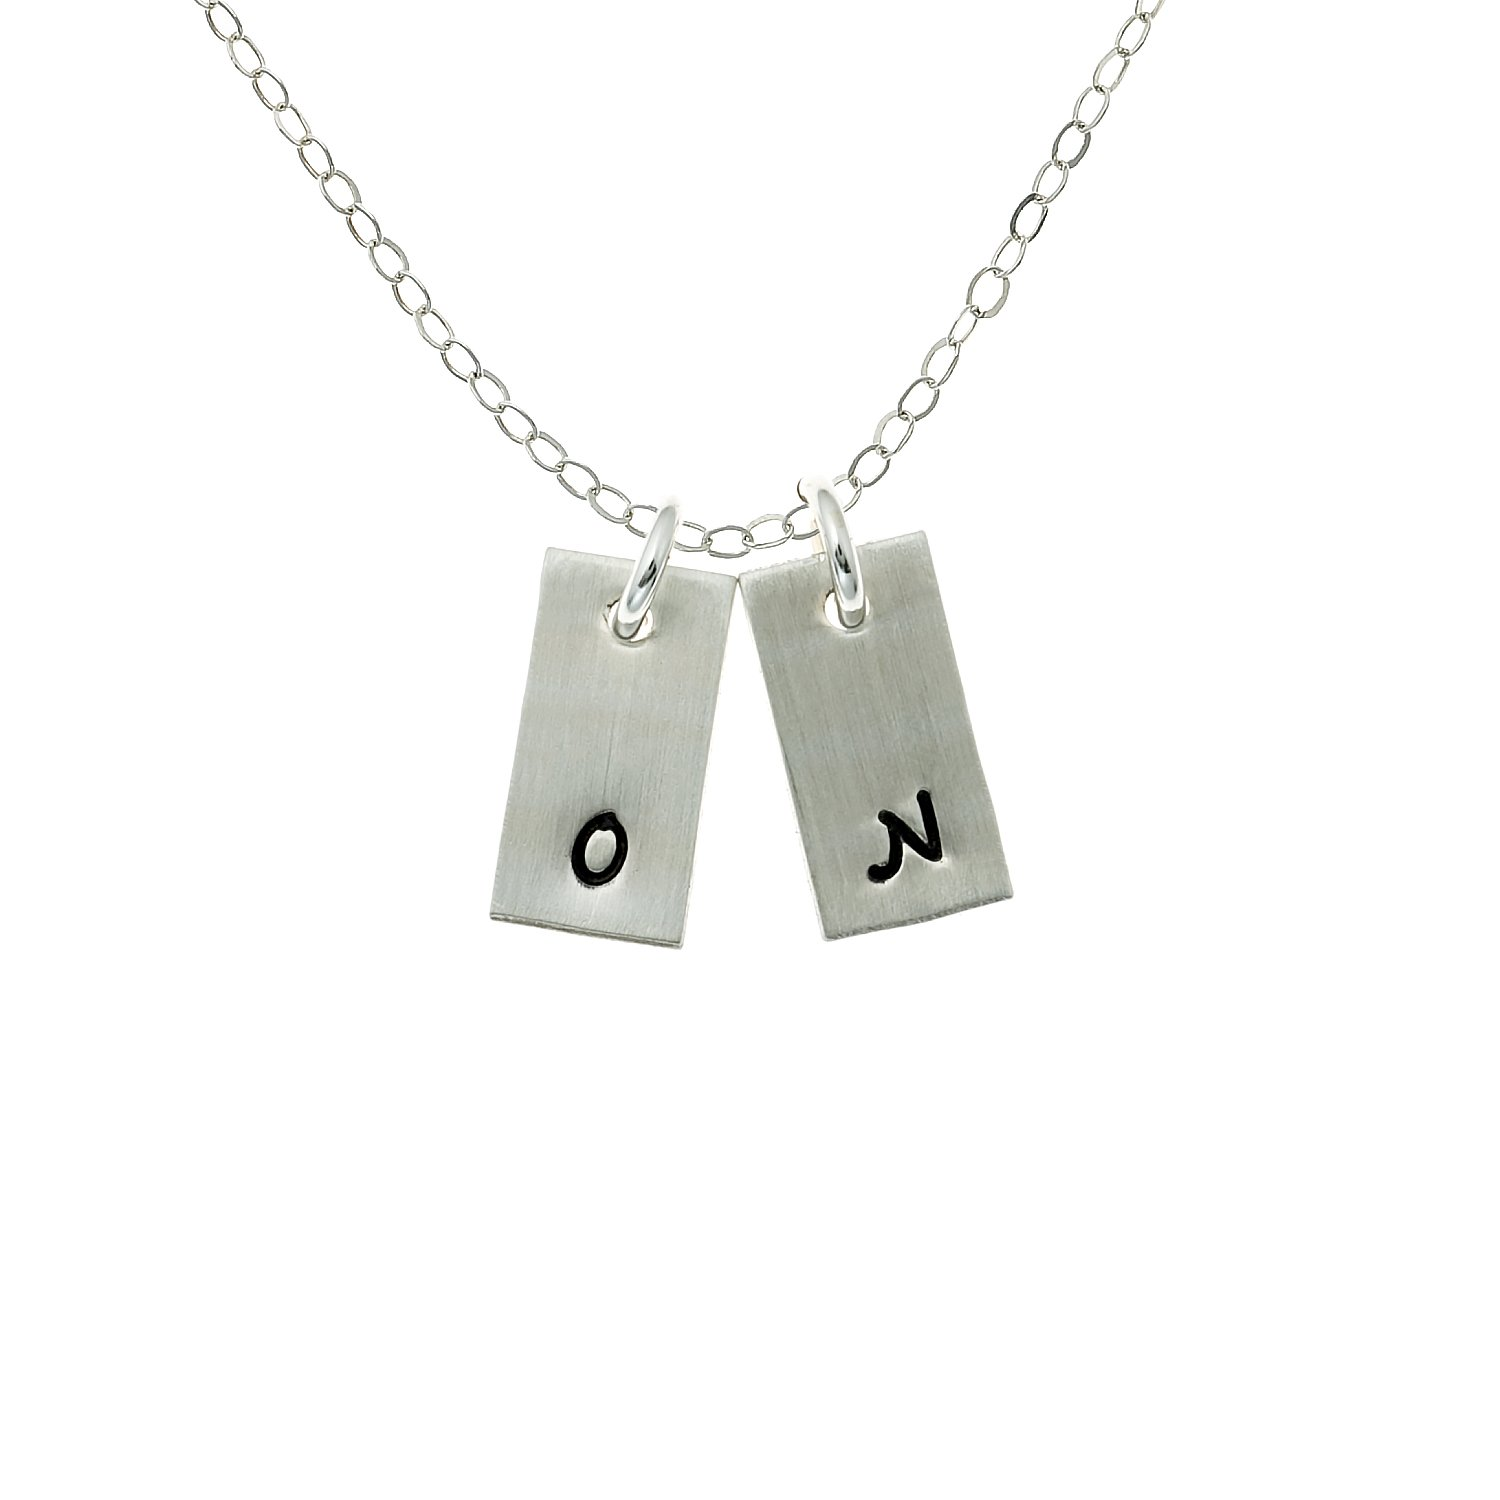 La Petite Rectangular Initial Charm Personalize 2 Rectangular Sterling Silver Charms Simple and Elegant Gifts for Her. Choice of Sterling Silver Chain Hand Brushed for Matte Finish